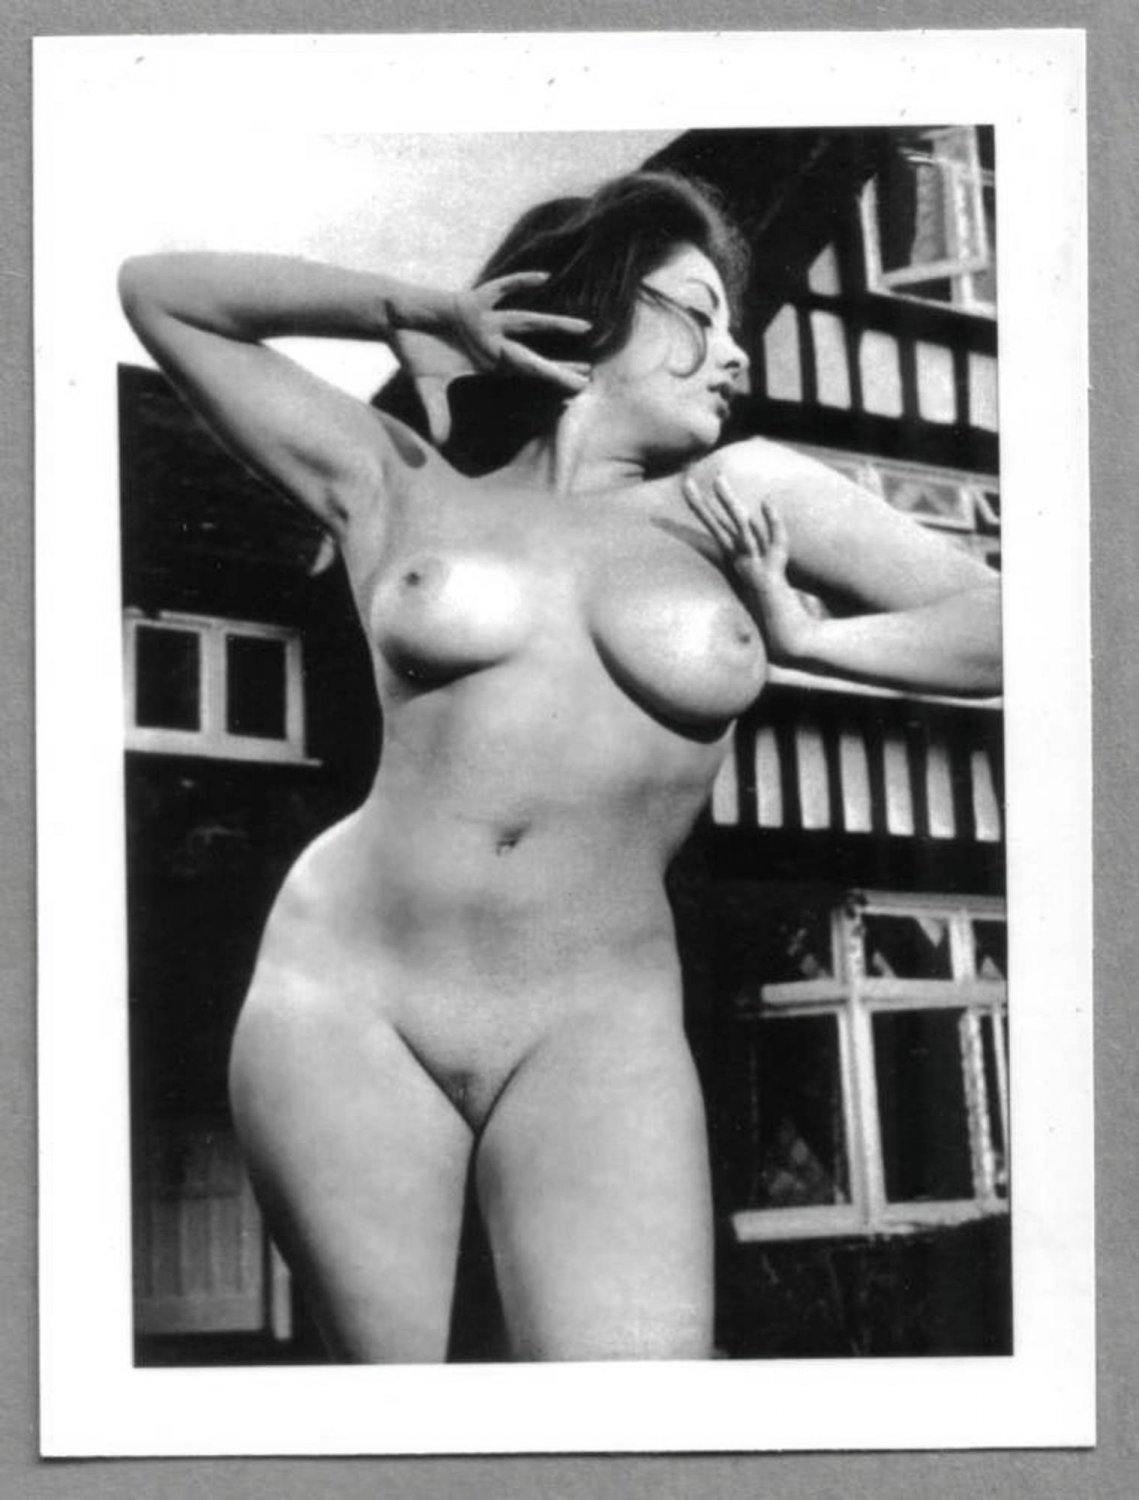 JUNE PALMER TOTALLY NUDE NEW REPRINT PHOTO 5X7 #190